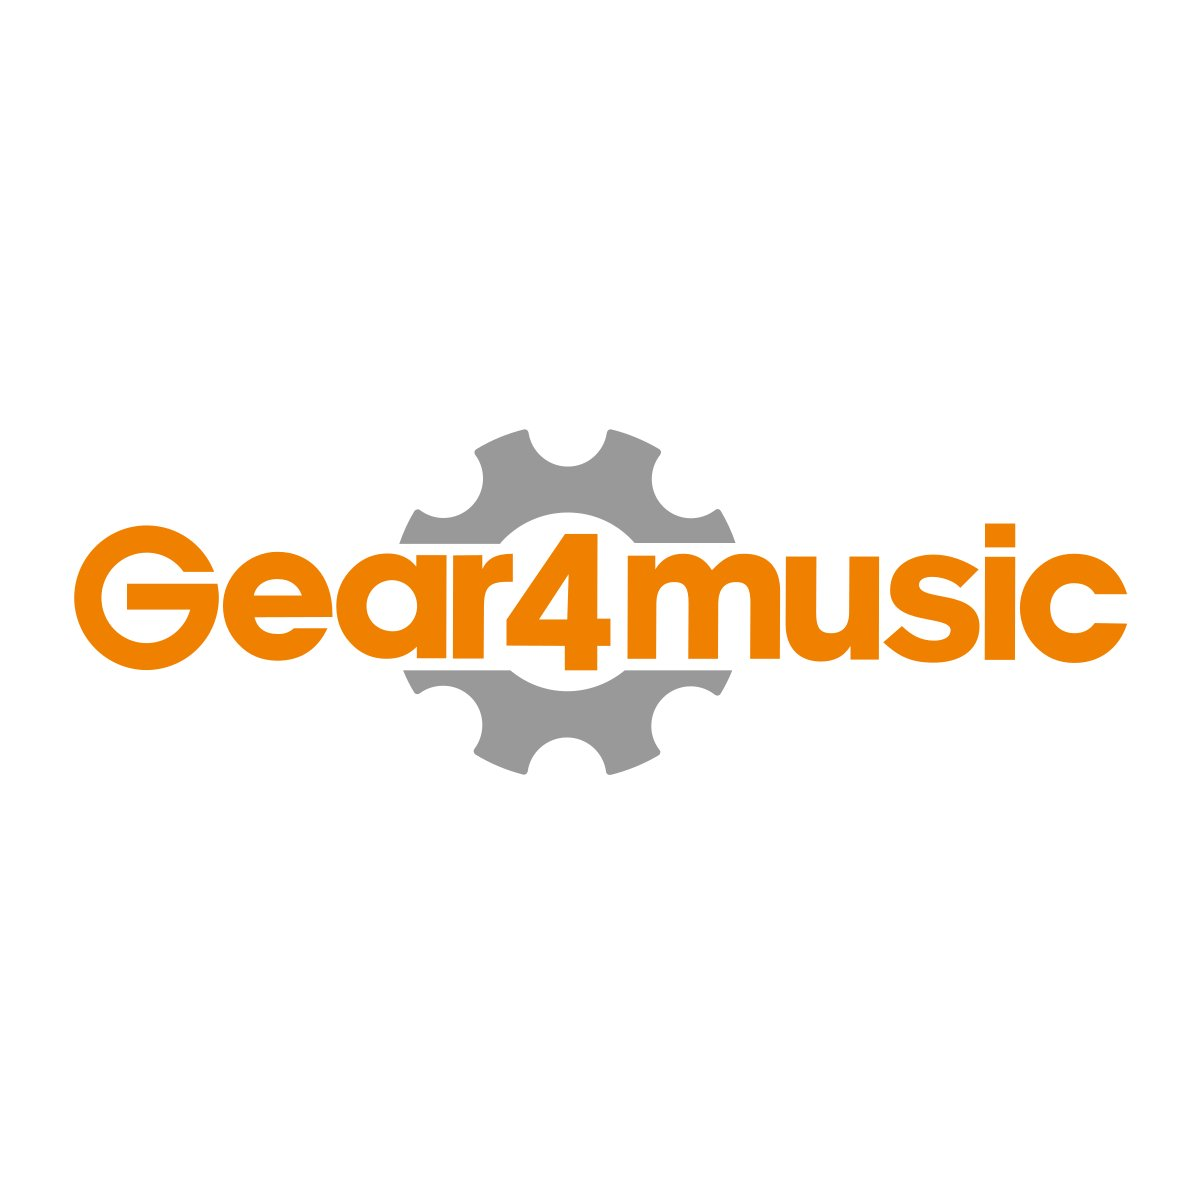 Buy 88 Key MIDI keyboards, Keyboards and Synths at Gear4music